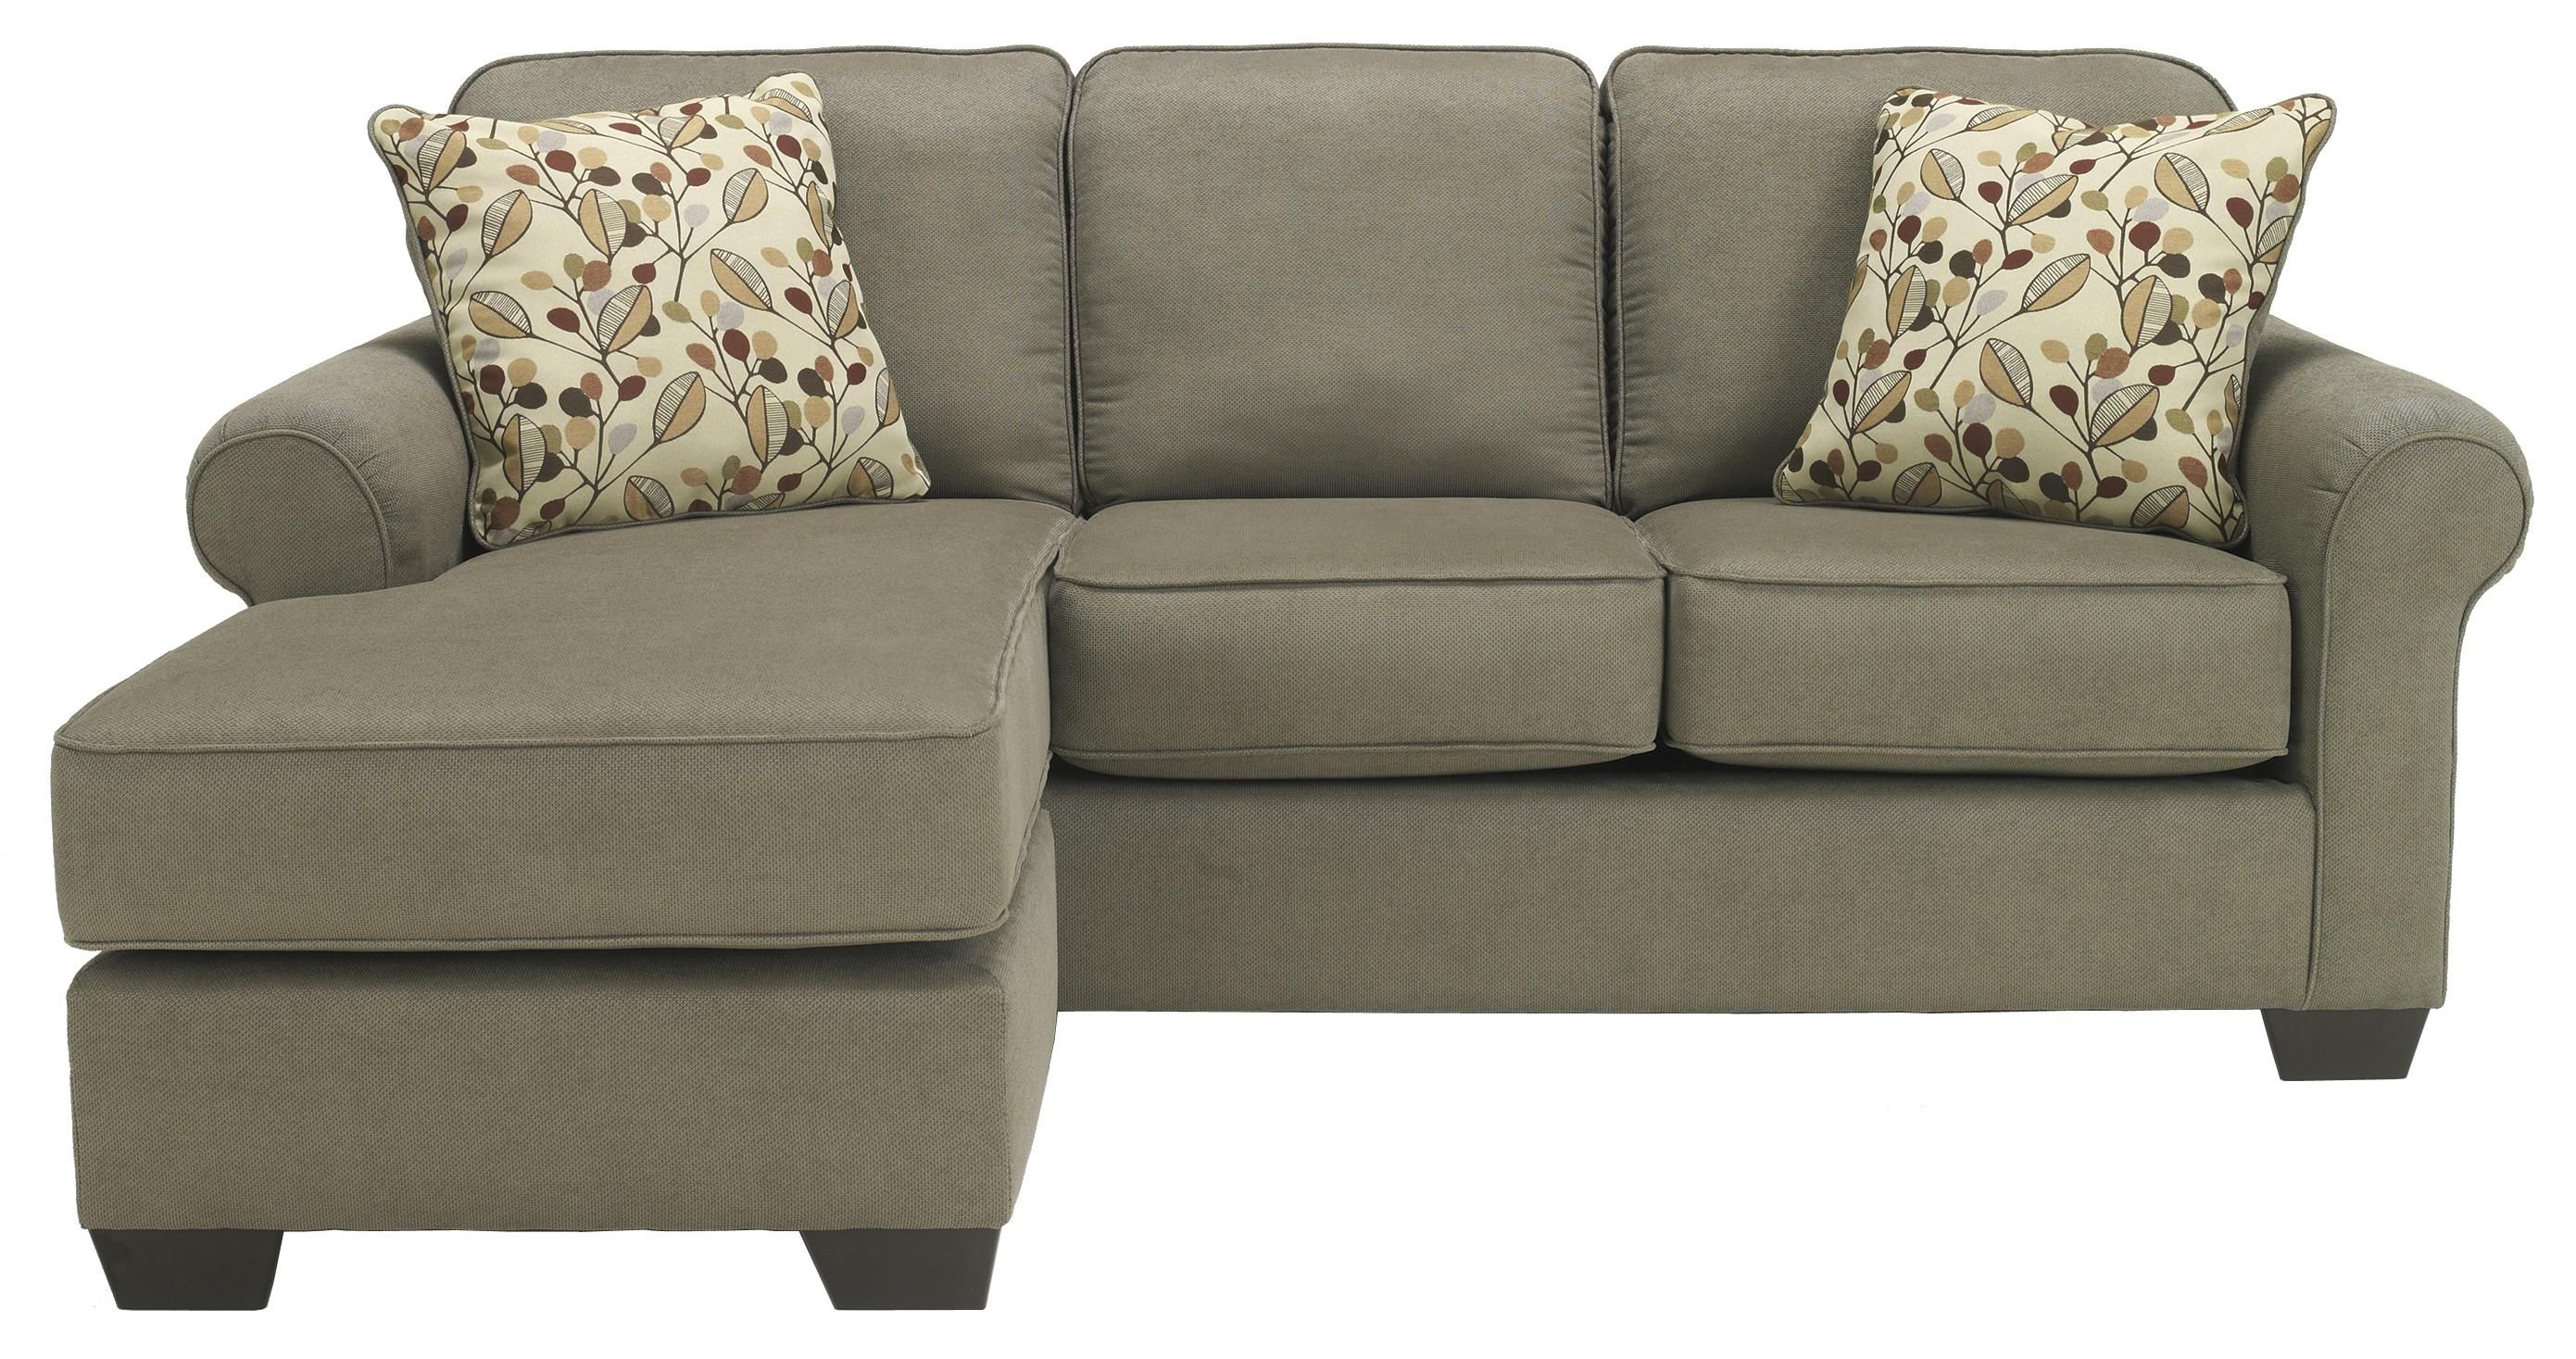 Best Danely Dusk Sofa Chaise By Benchcraft Sectional Sofa Couch Sectional Sofa With Chaise 400 x 300